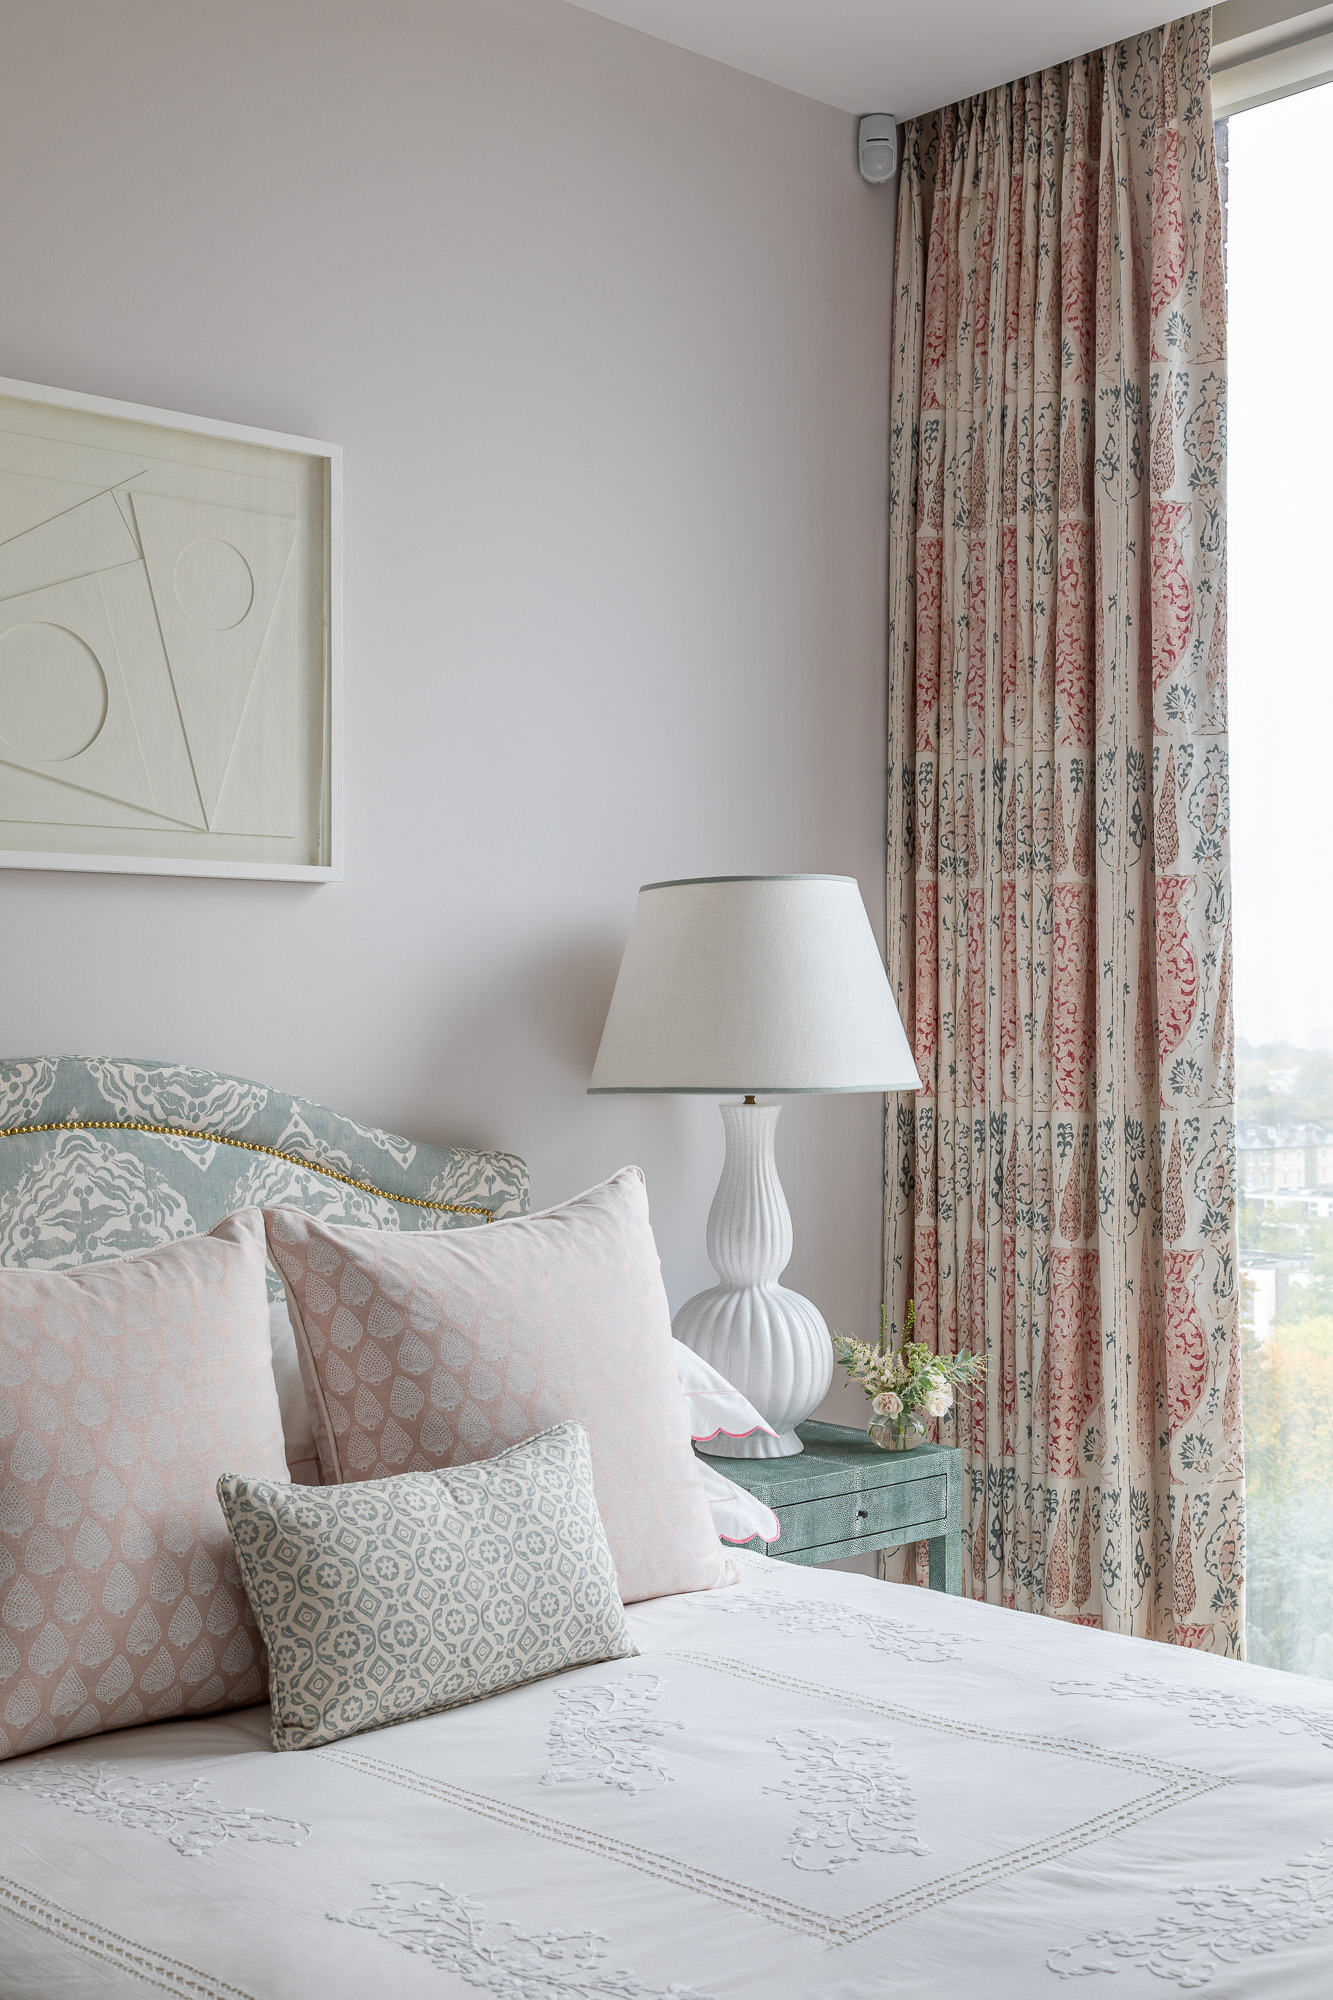 jonathan bond, interior photographer, double bed scatter cushions window view, belsize park, london